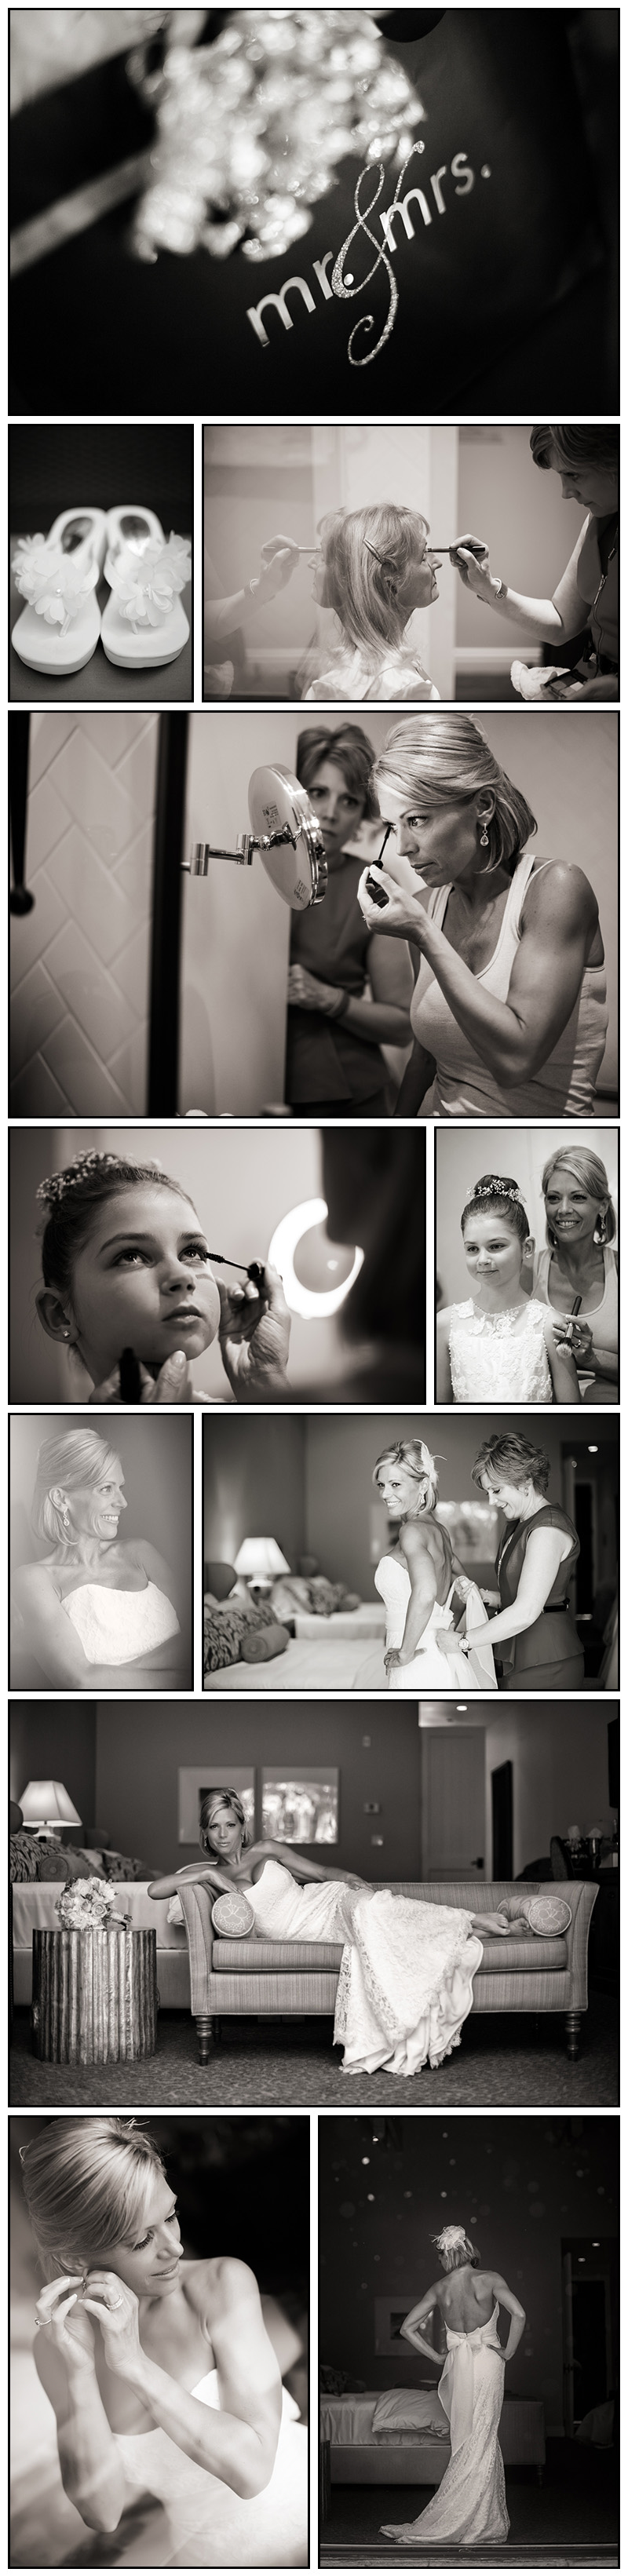 Bride Getting Ready Photos at Hotel Younville Napa Wedding